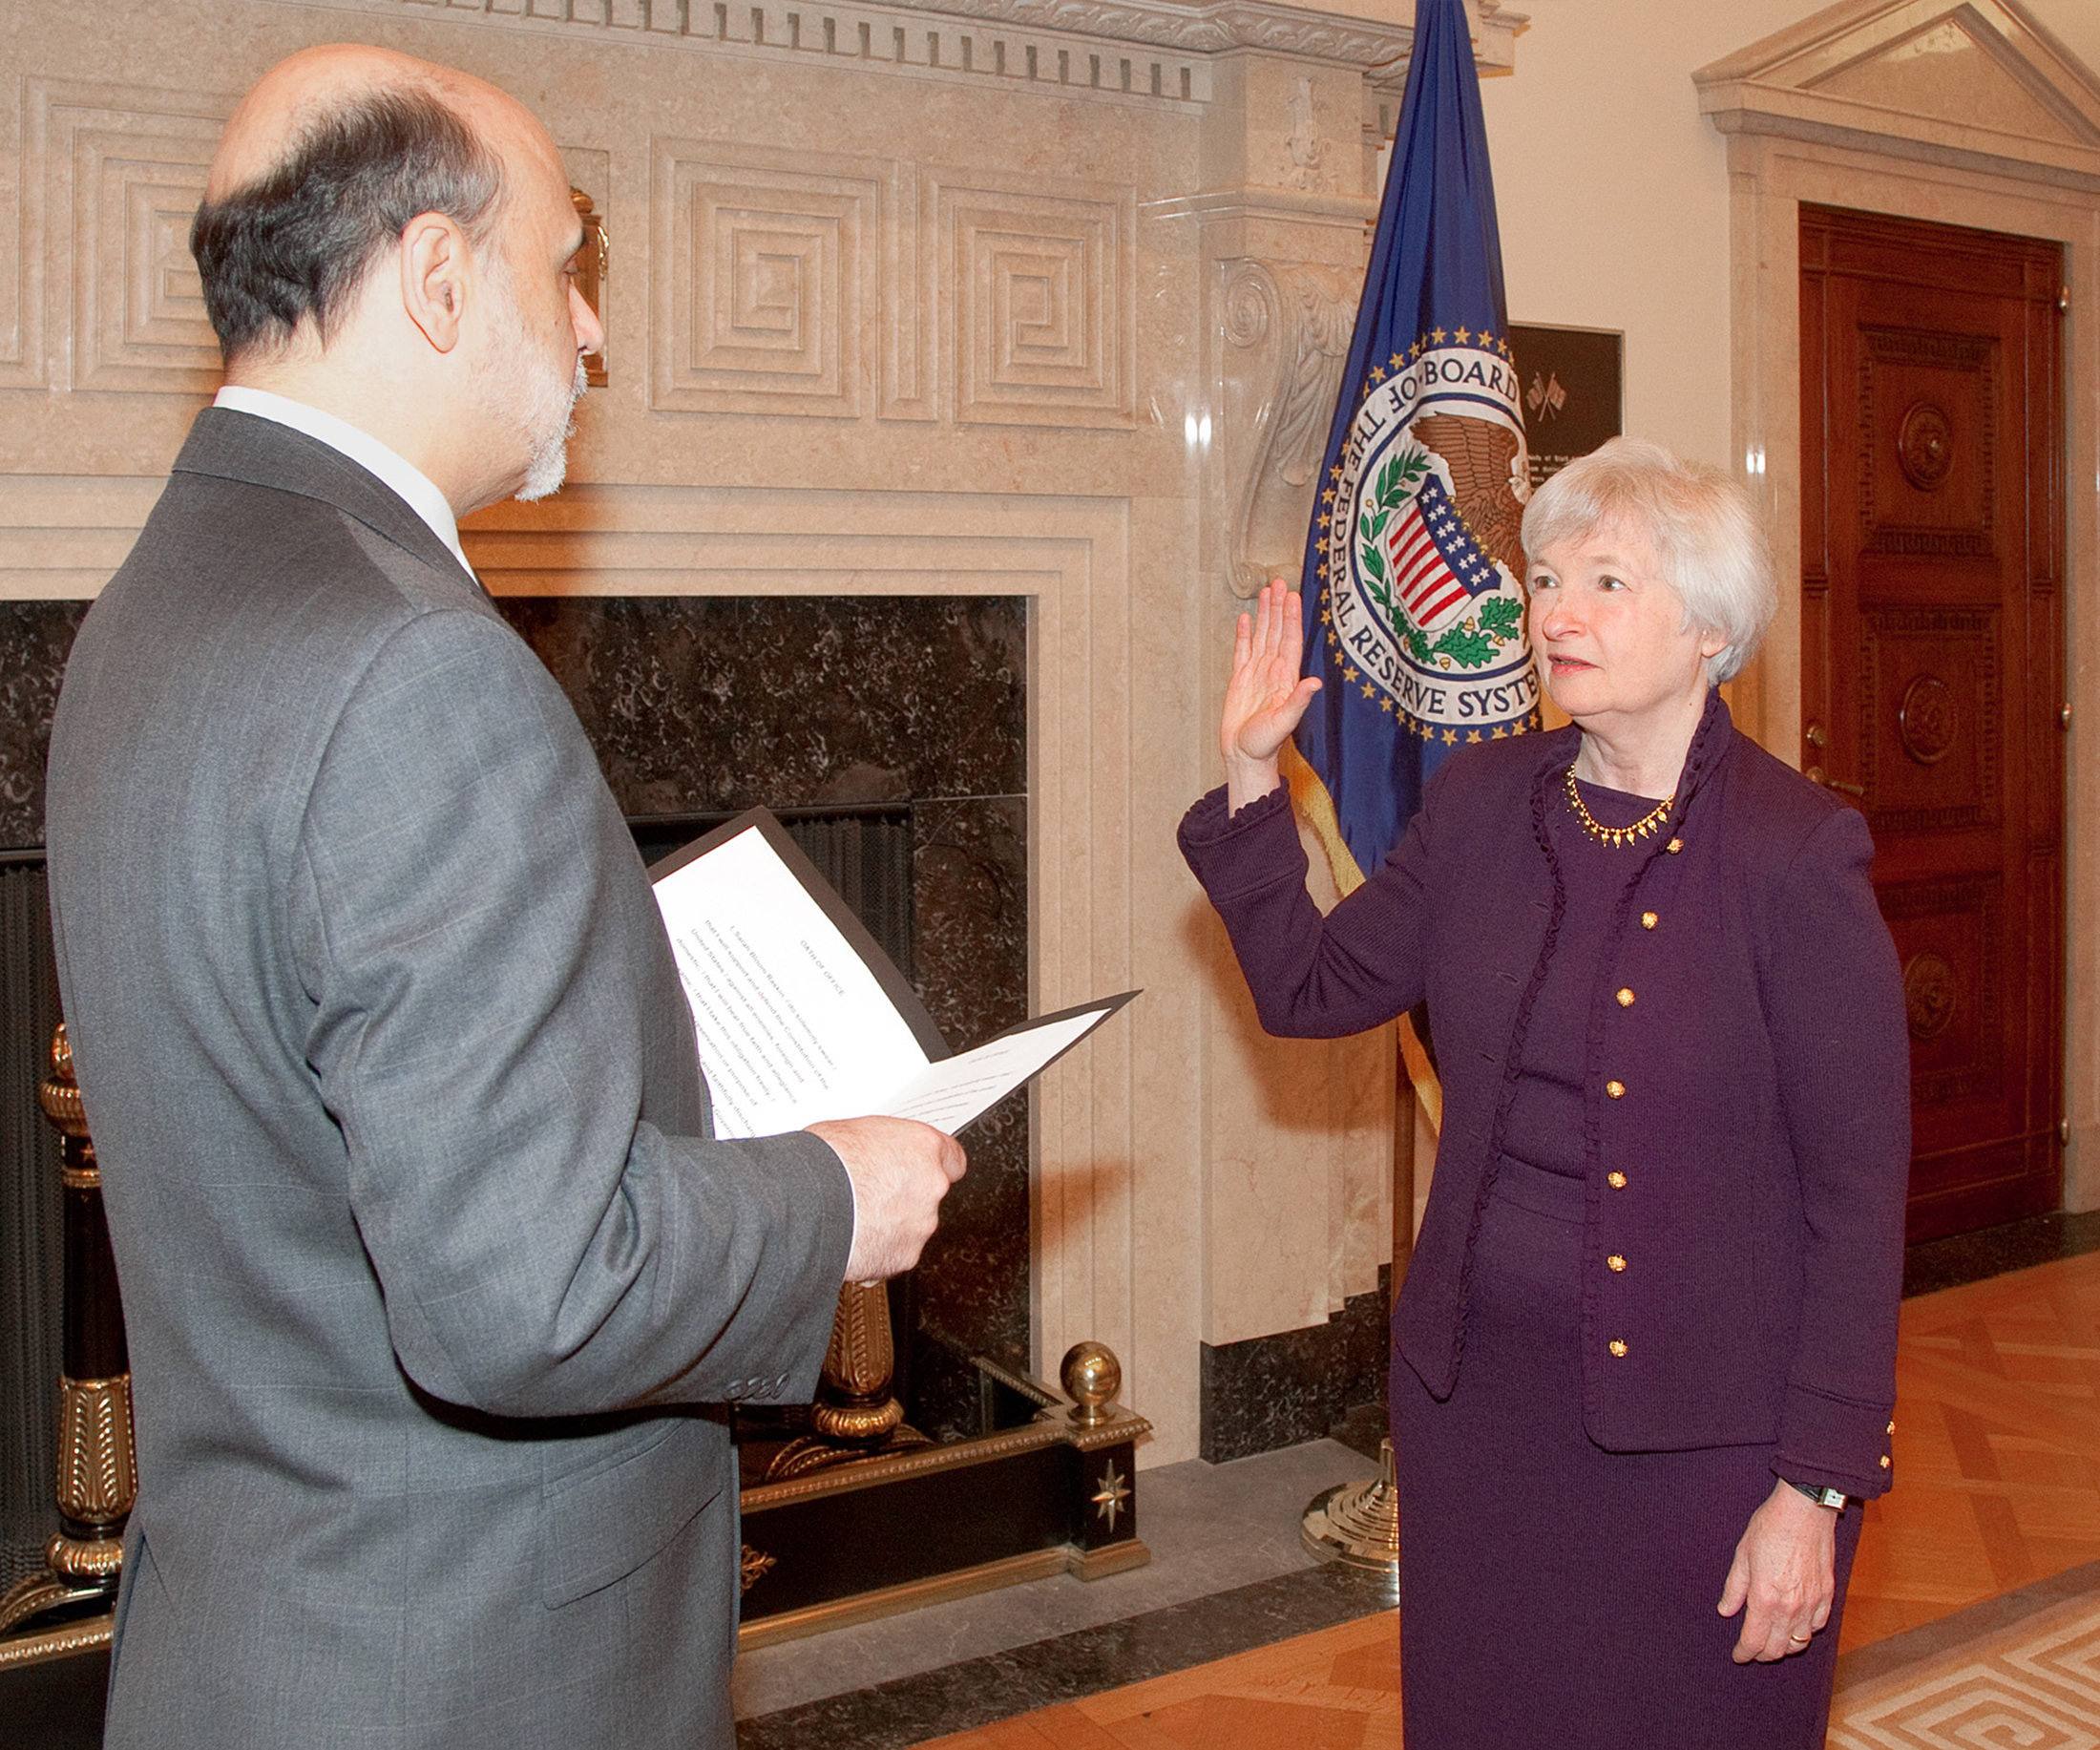 Janet Yellen being sworn in by Fed Chairman Ben Bernanke